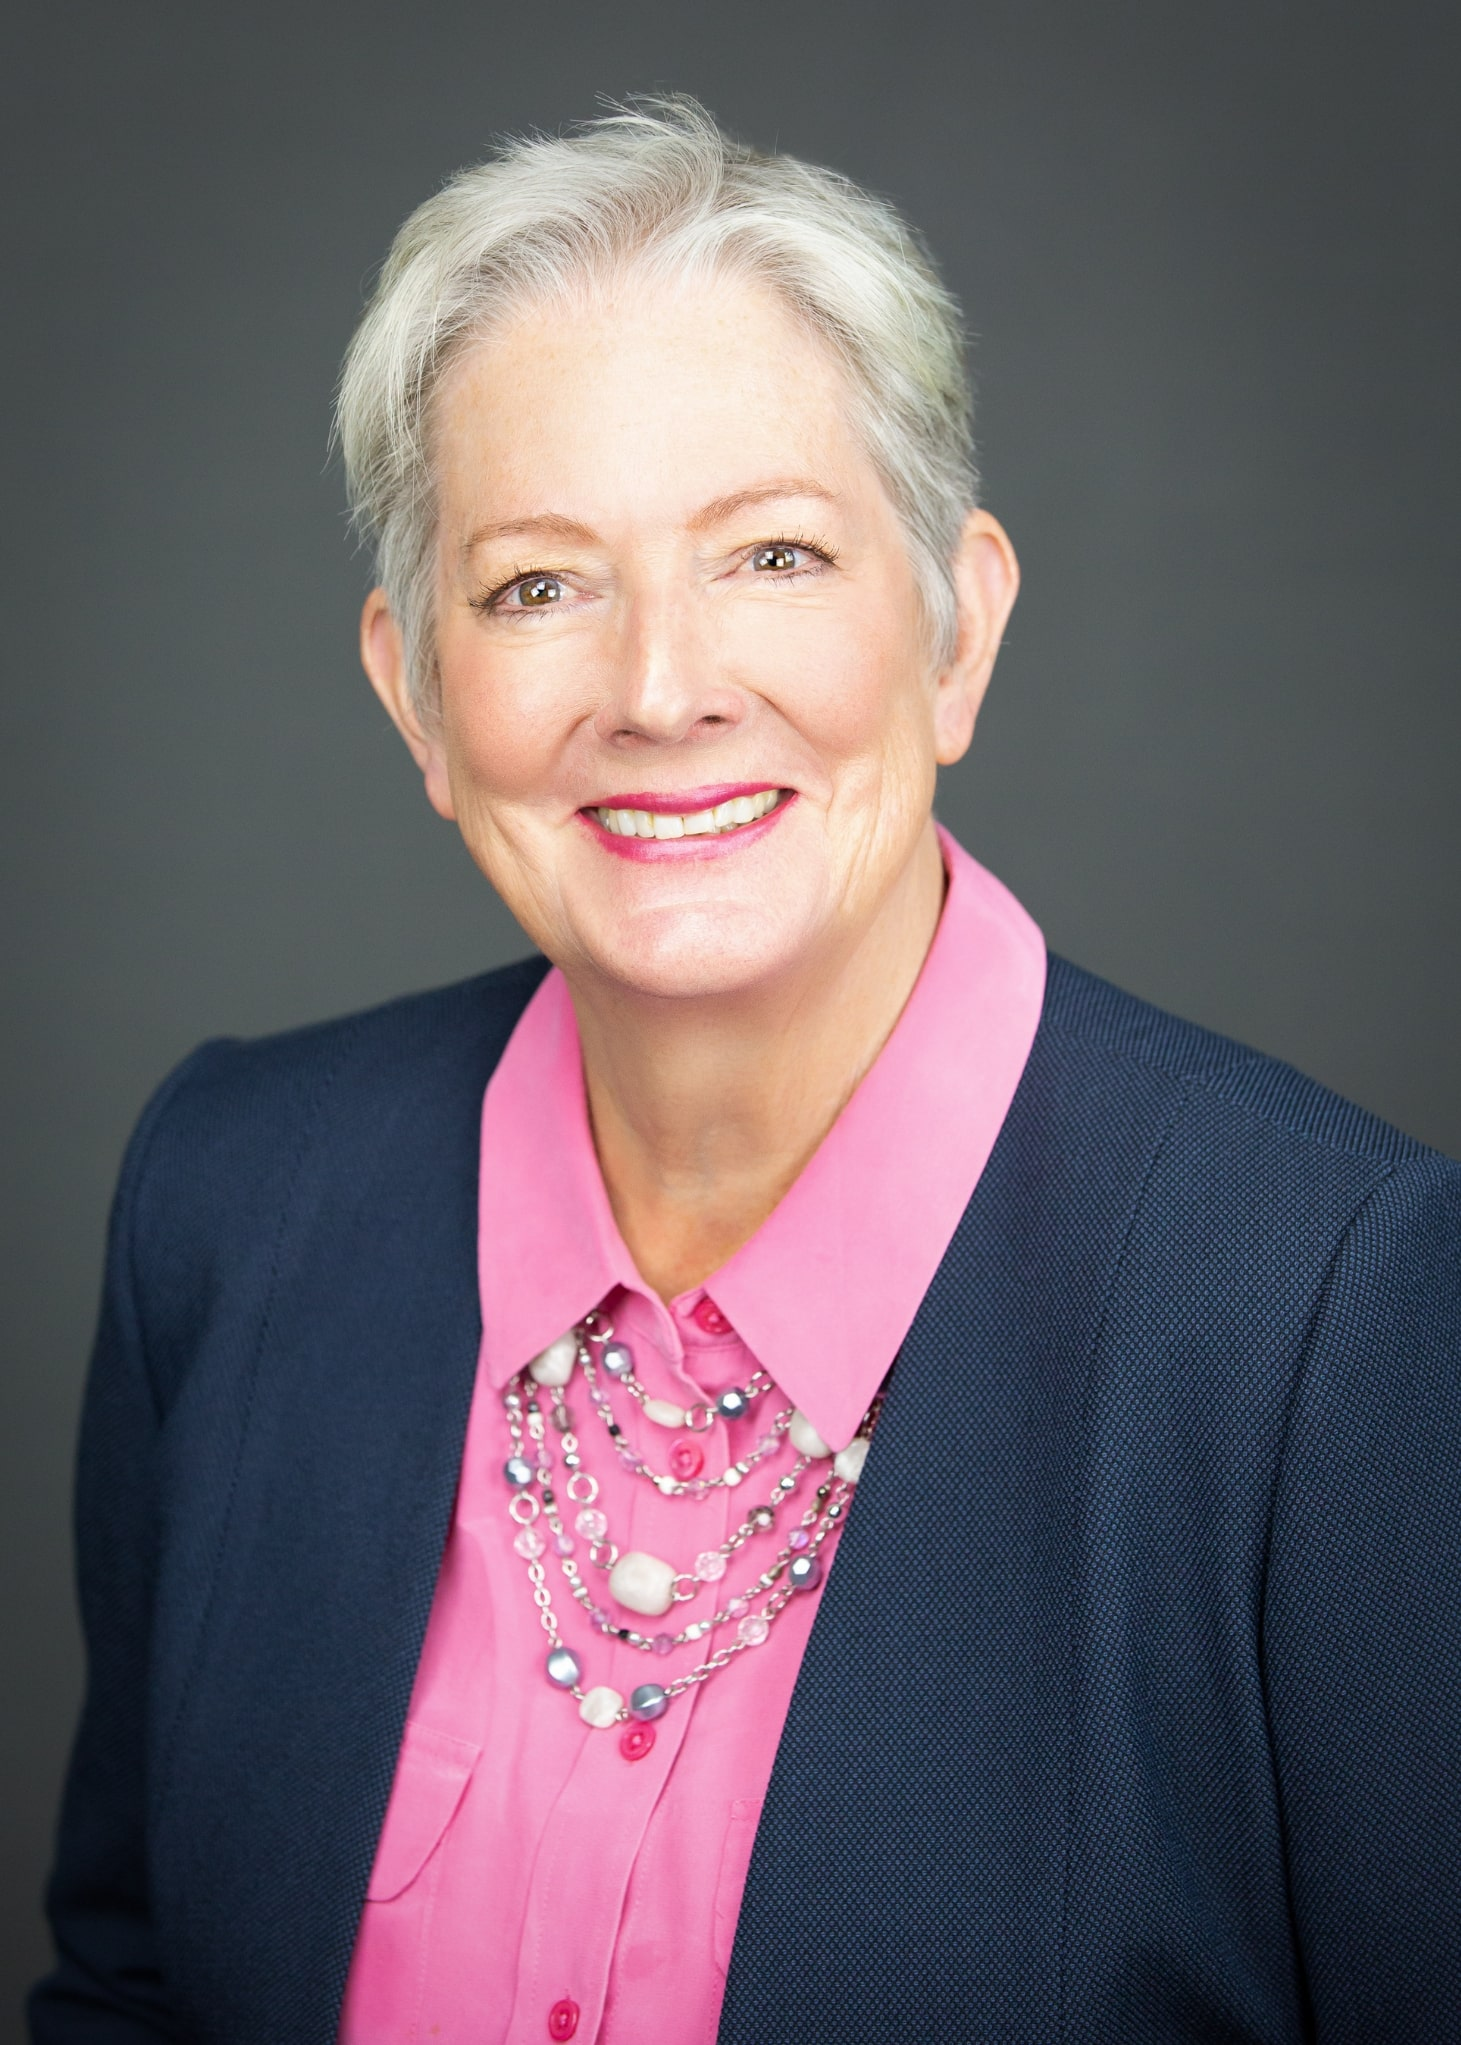 Marilyn Sherman Clay, Windermere real estate, whidbey island, homes, trusted realtor, agent, homes for sale, buy, sell, invest